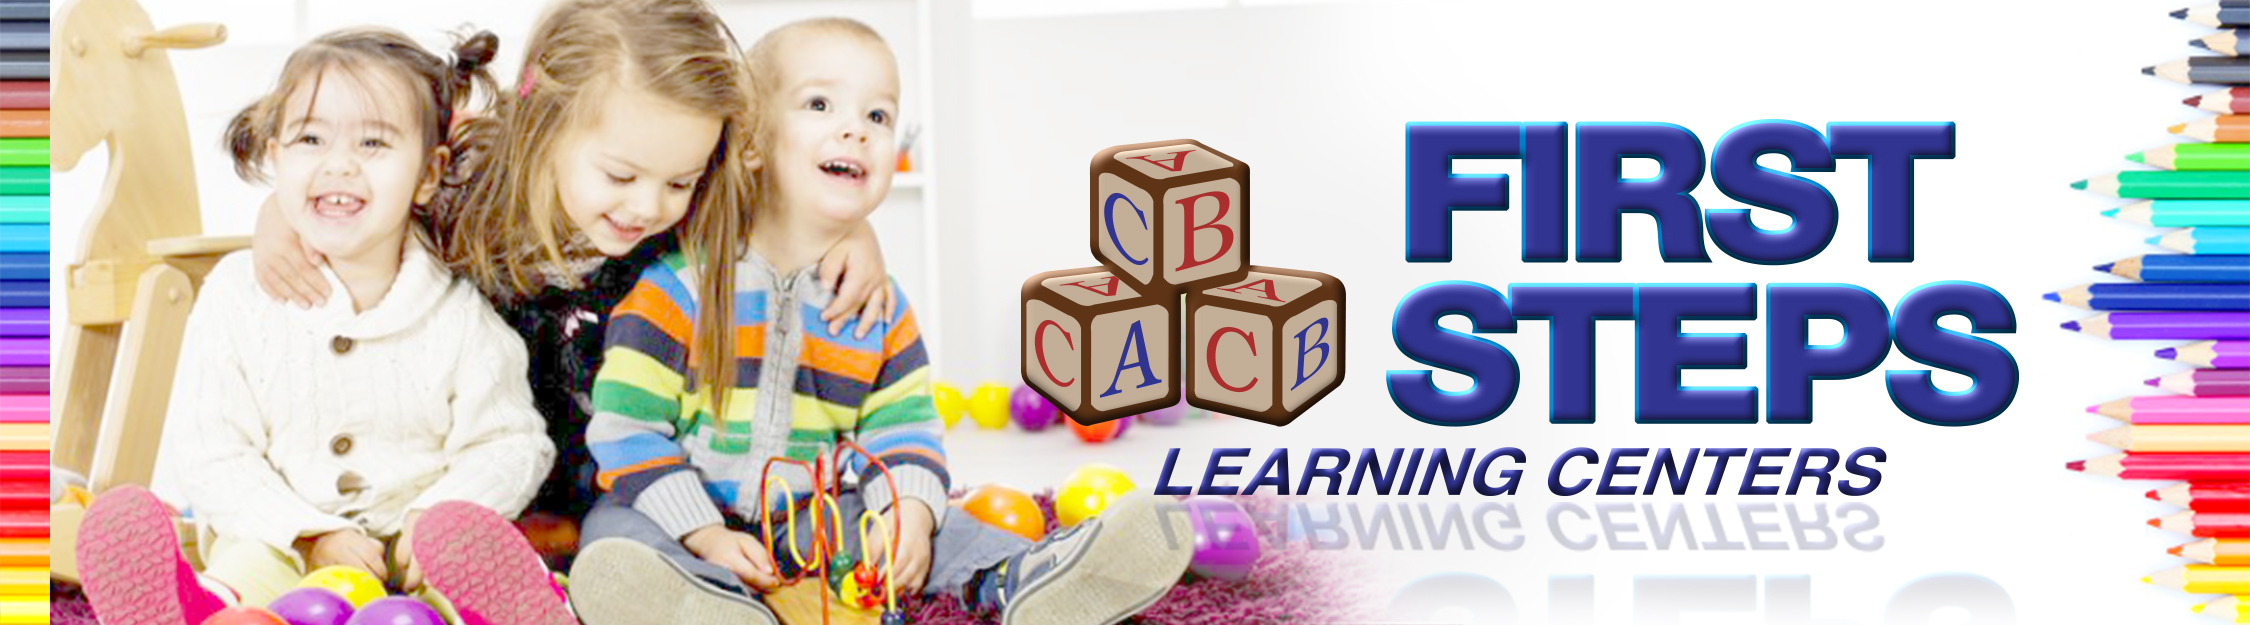 First Steps Learning Centers